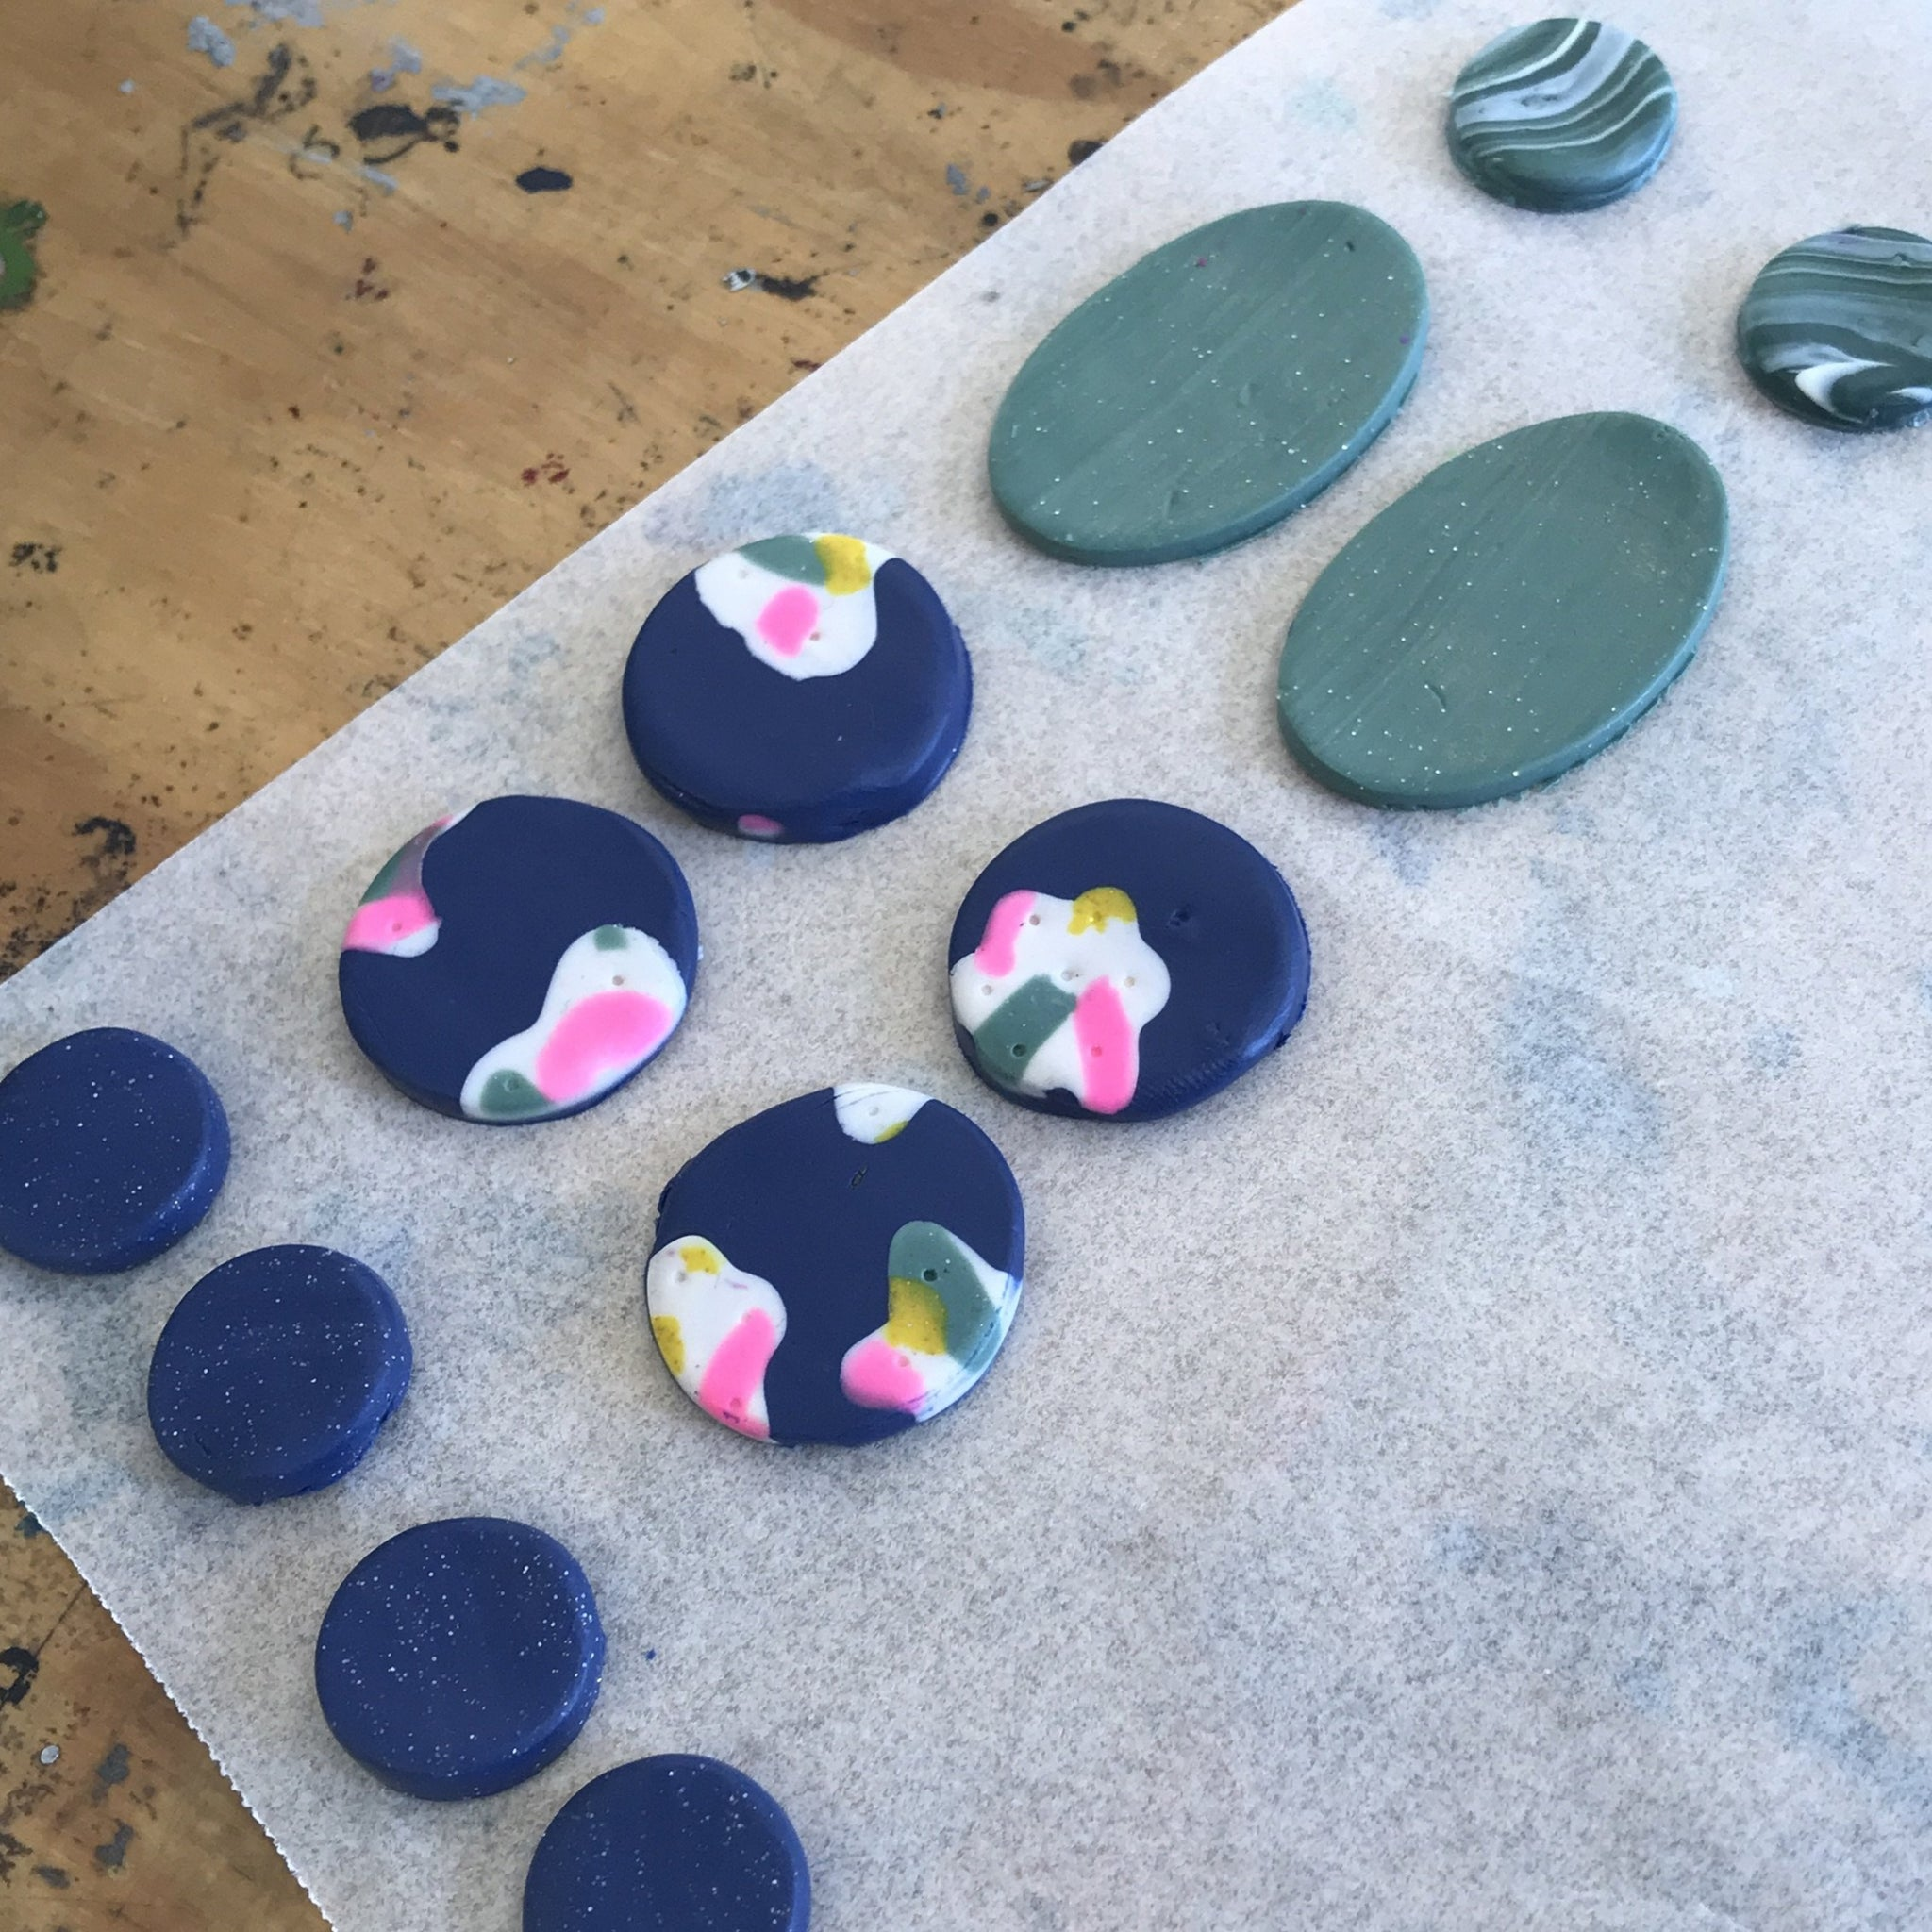 Polymer Clay Earring Workshop - Saturday 28th November